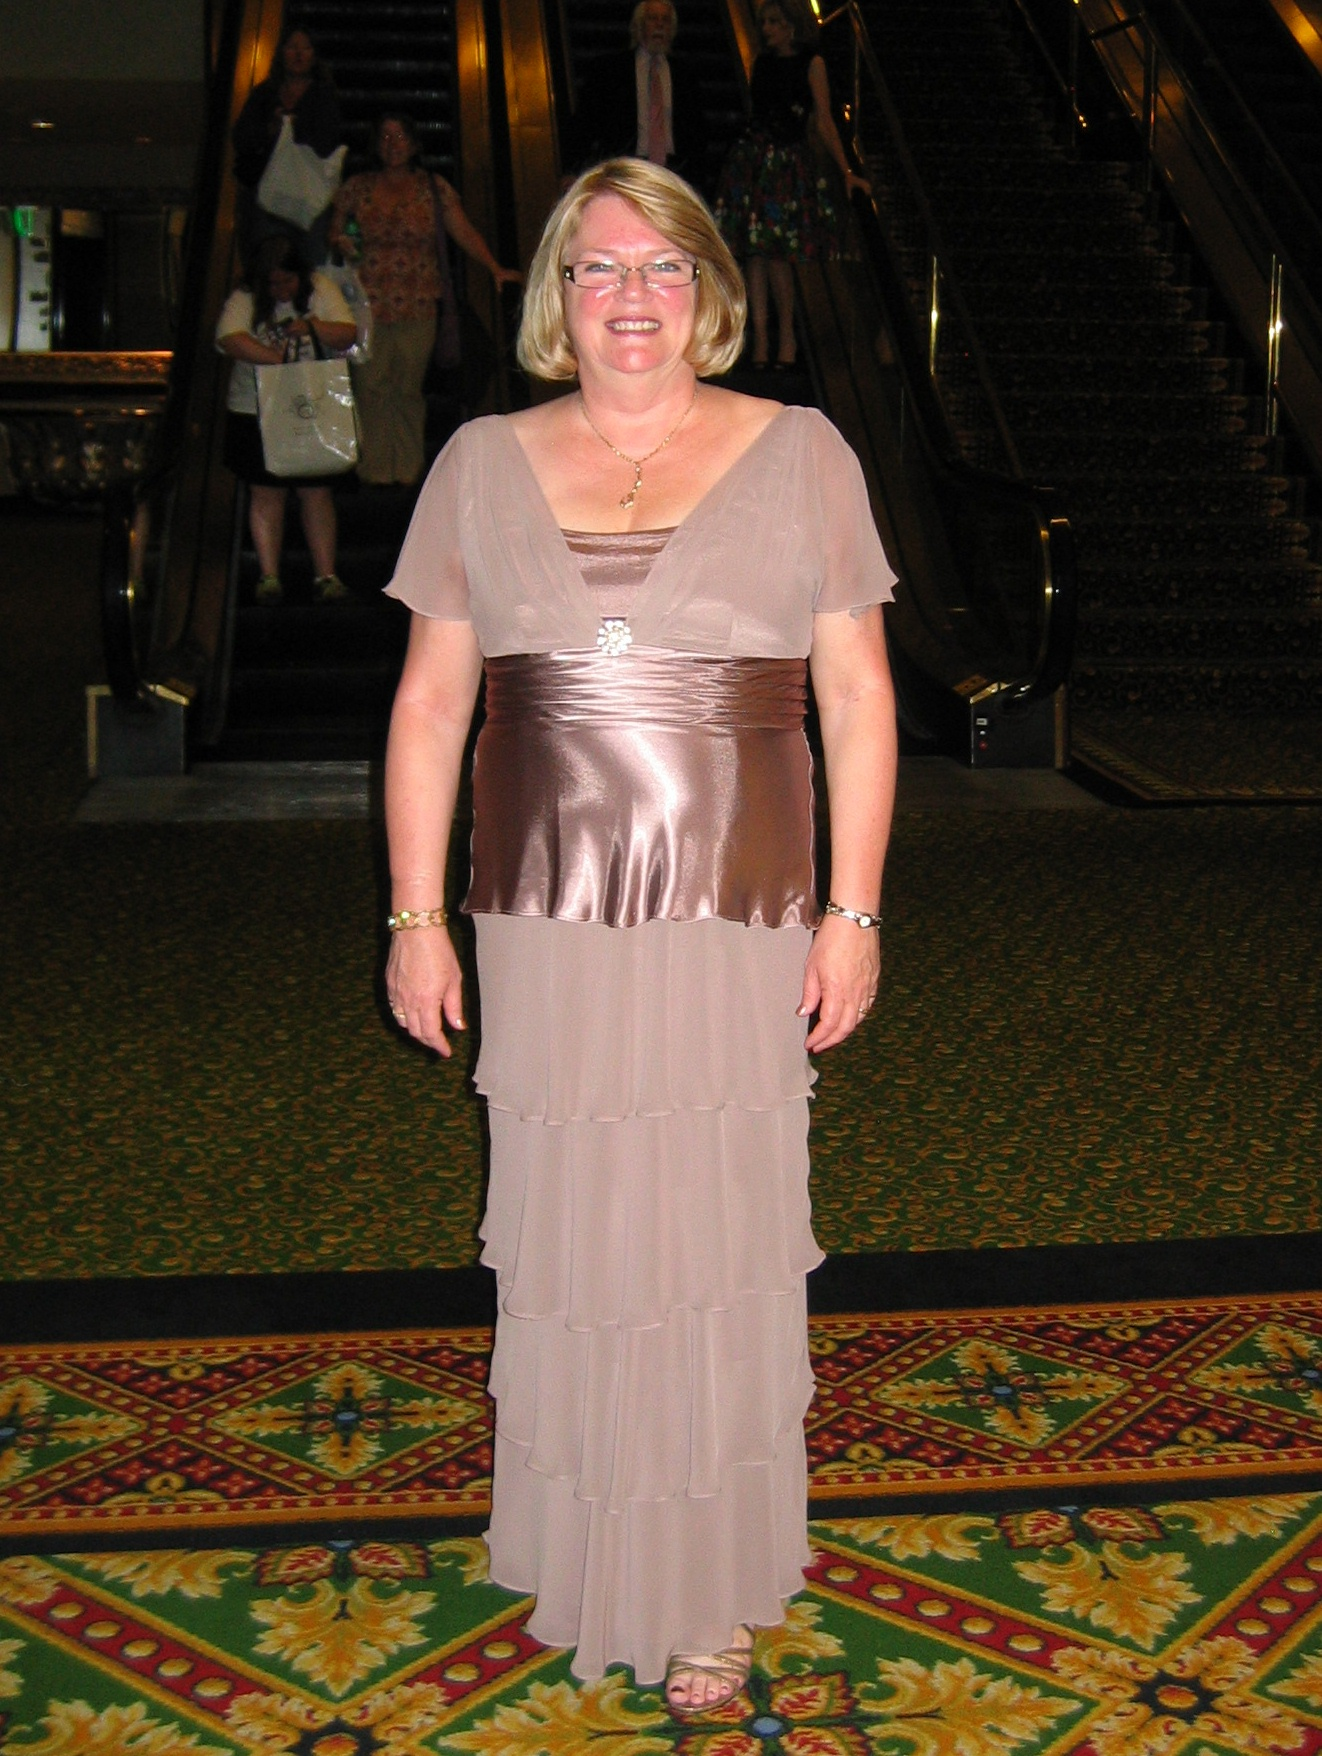 Jacqueline Floyd at the 2008 RWA National Conference